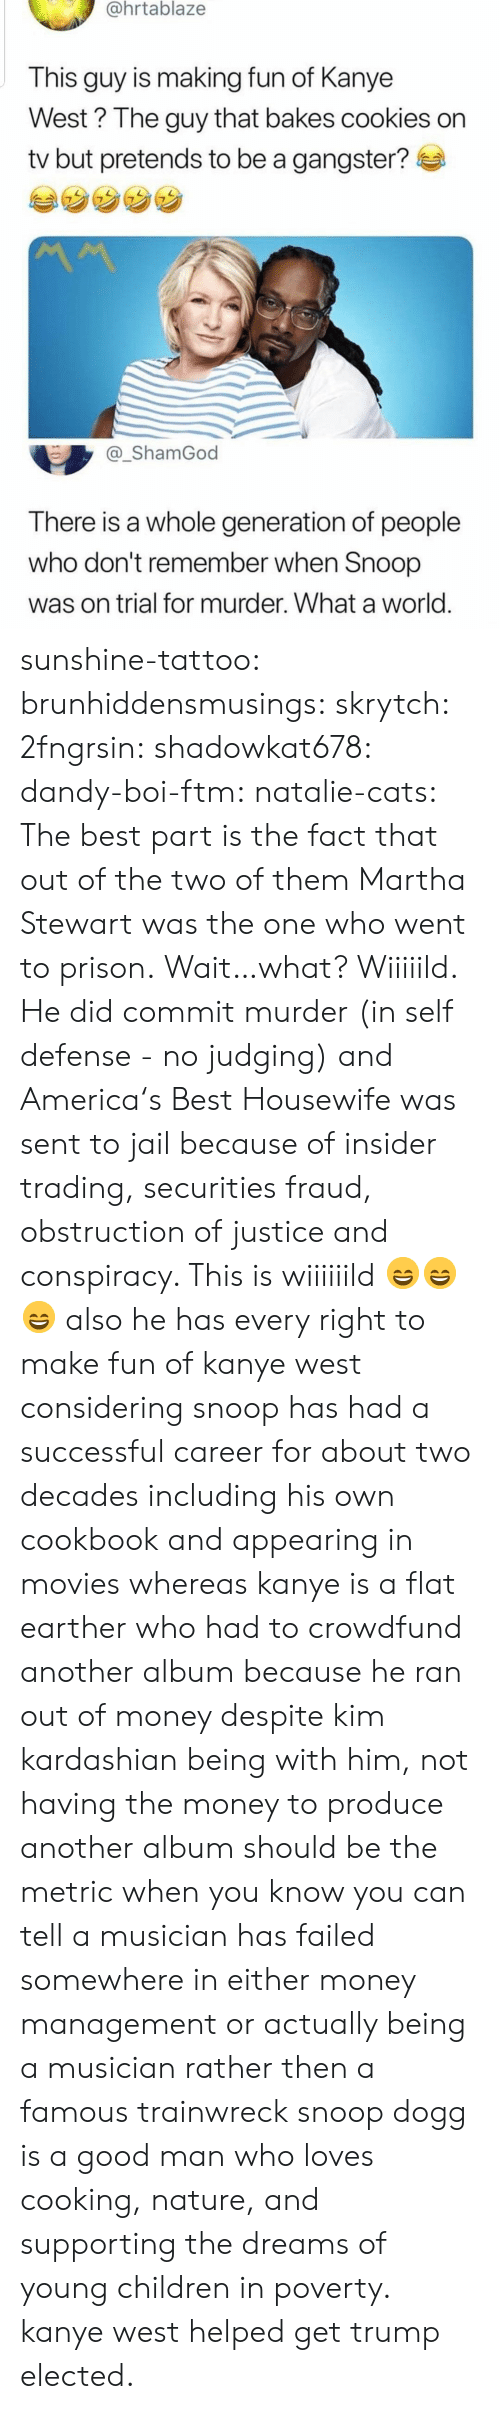 Prison: @hrtablaze  This guy is making fun of Kanye  West? The guy that bakes cookies on  tv but pretends to be a gangster?  _ShamGod  There is a whole generation of people  who don't remember when Snoop  was on trial for murder. What a world sunshine-tattoo: brunhiddensmusings:  skrytch:  2fngrsin:  shadowkat678:  dandy-boi-ftm:   natalie-cats:   The best part is the fact that out of the two of them Martha Stewart was the one who went to prison.   Wait…what?   Wiiiiild. He did commit murder (in self defense - no judging) and America's Best Housewife was sent to jail because of insider trading, securities fraud, obstruction of justice and conspiracy. This is wiiiiiild 😄😄😄    also he has every right to make fun of kanye west considering snoop has had a successful career for about two decades including his own cookbook and appearing in movies whereas kanye is a flat earther who had to crowdfund another album because he ran out of money despite kim kardashian being with him, not having the money to produce another album should be the metric when you know you can tell a musician has failed somewhere in either money management or actually being a musician rather then a famous trainwreck   snoop dogg is a good man who loves cooking, nature, and supporting the dreams of young children in poverty. kanye west helped get trump elected.